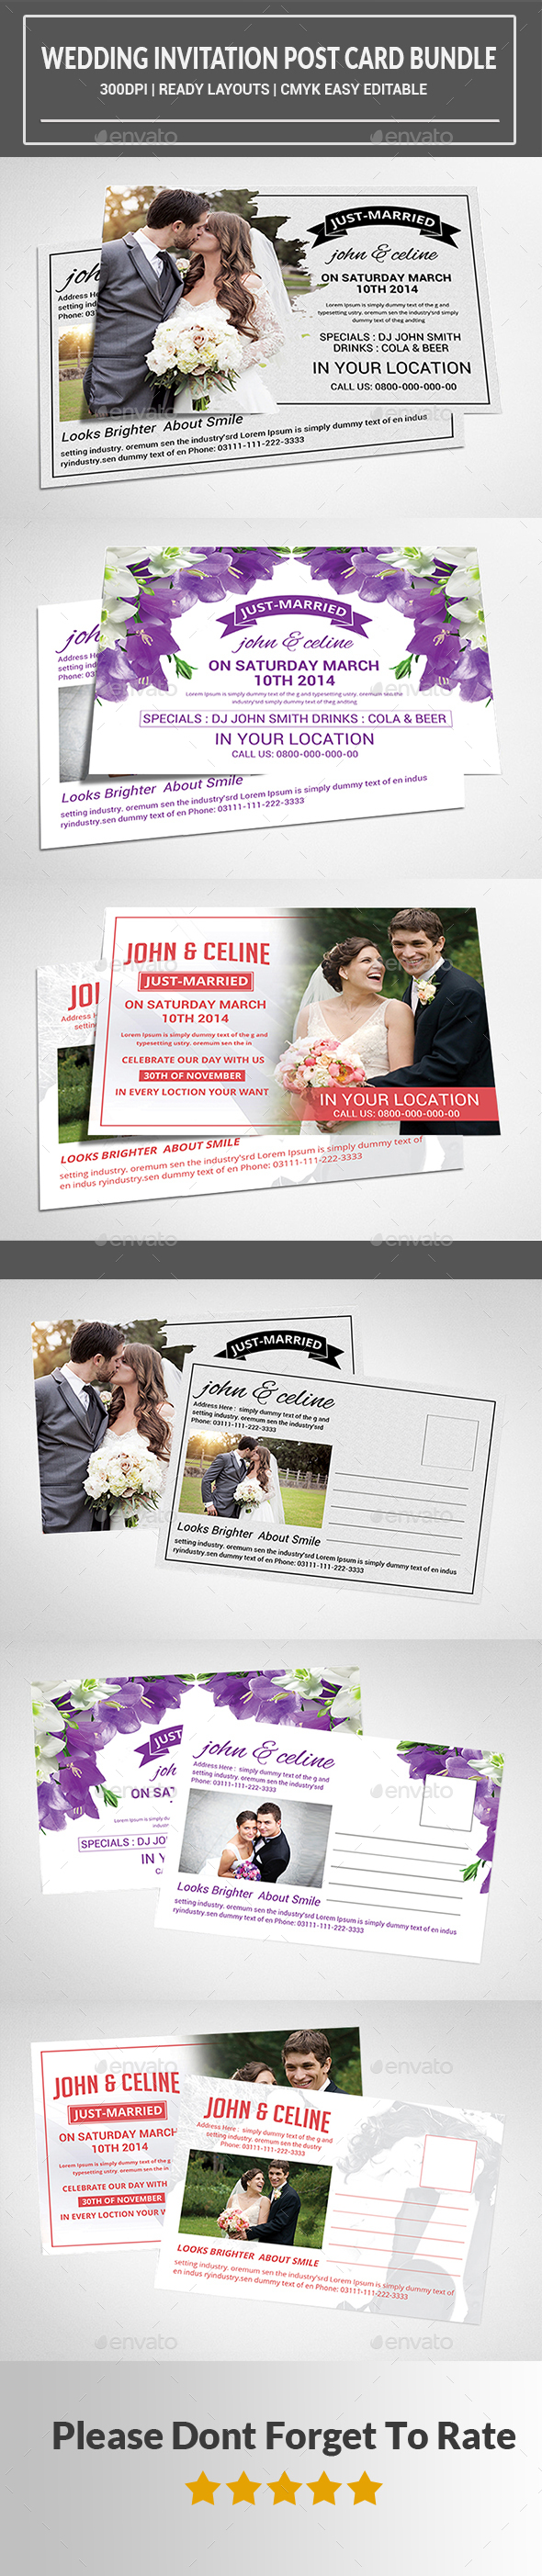 Wedding Invitation Post Card Bundle